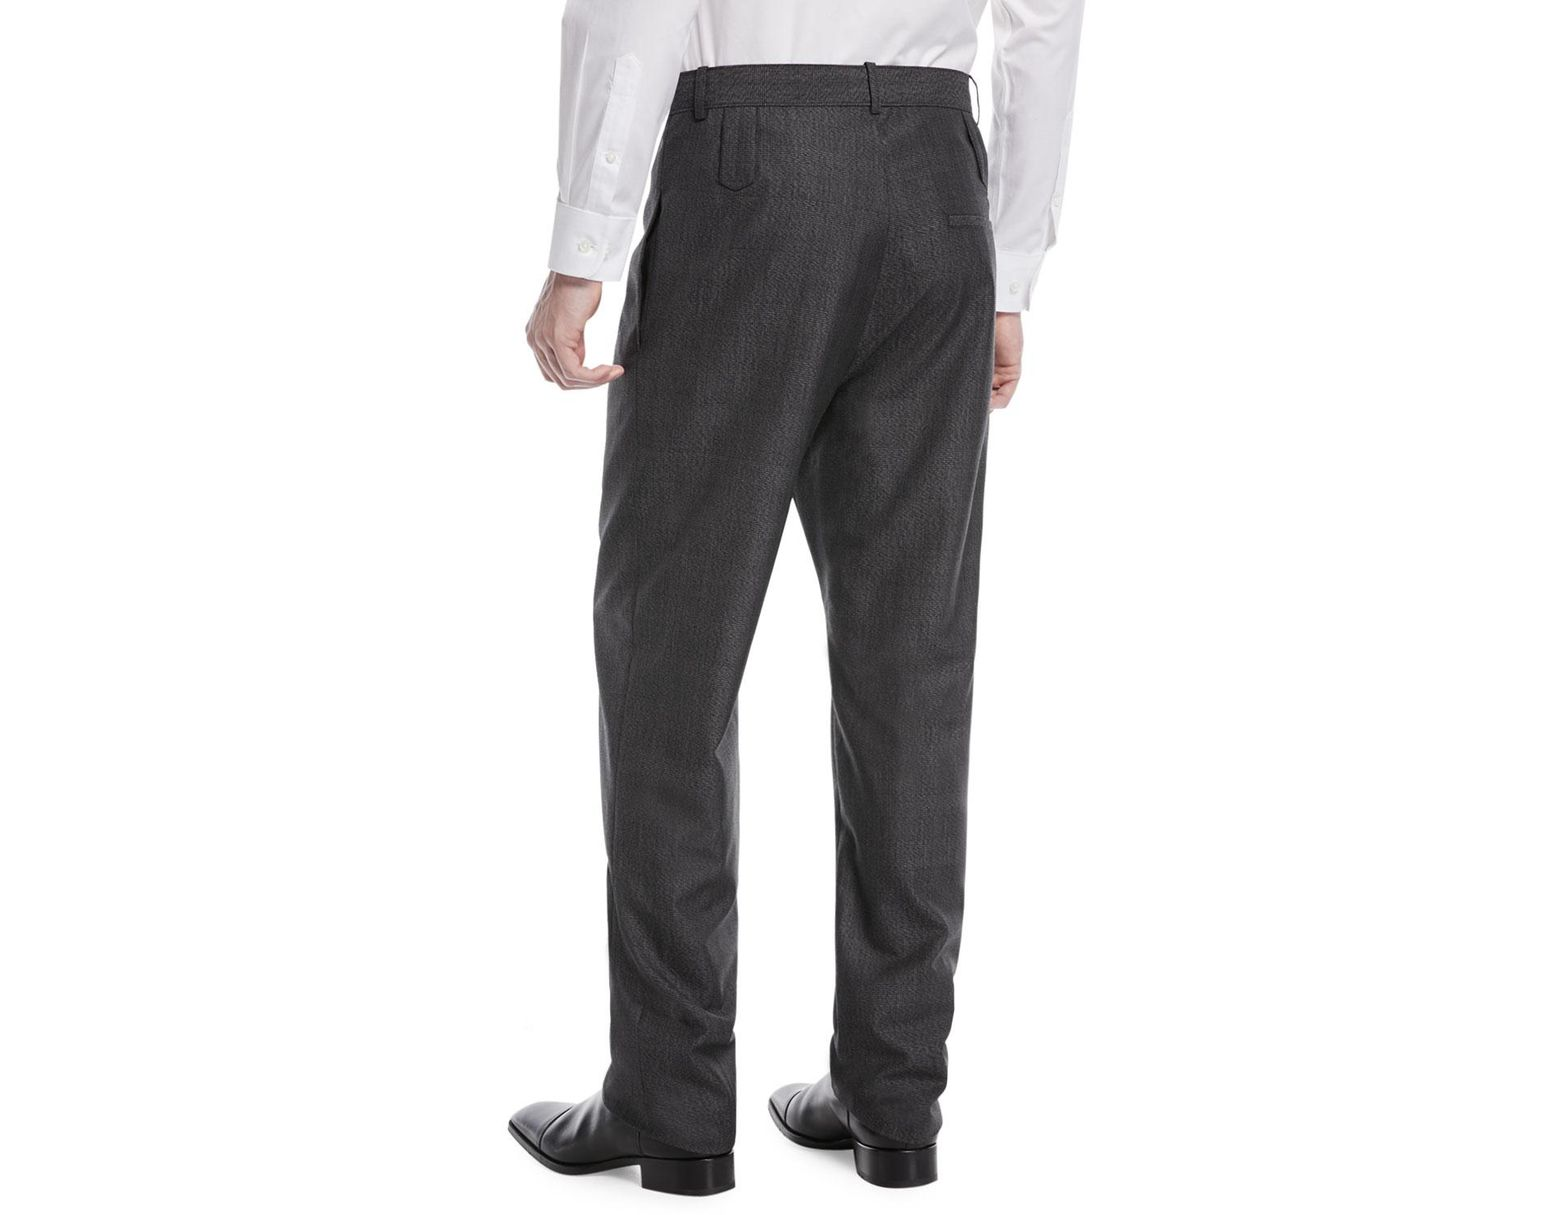 28efabe17c4f26 Balenciaga High-rise Double Belt-loop Trousers in Gray for Men - Lyst